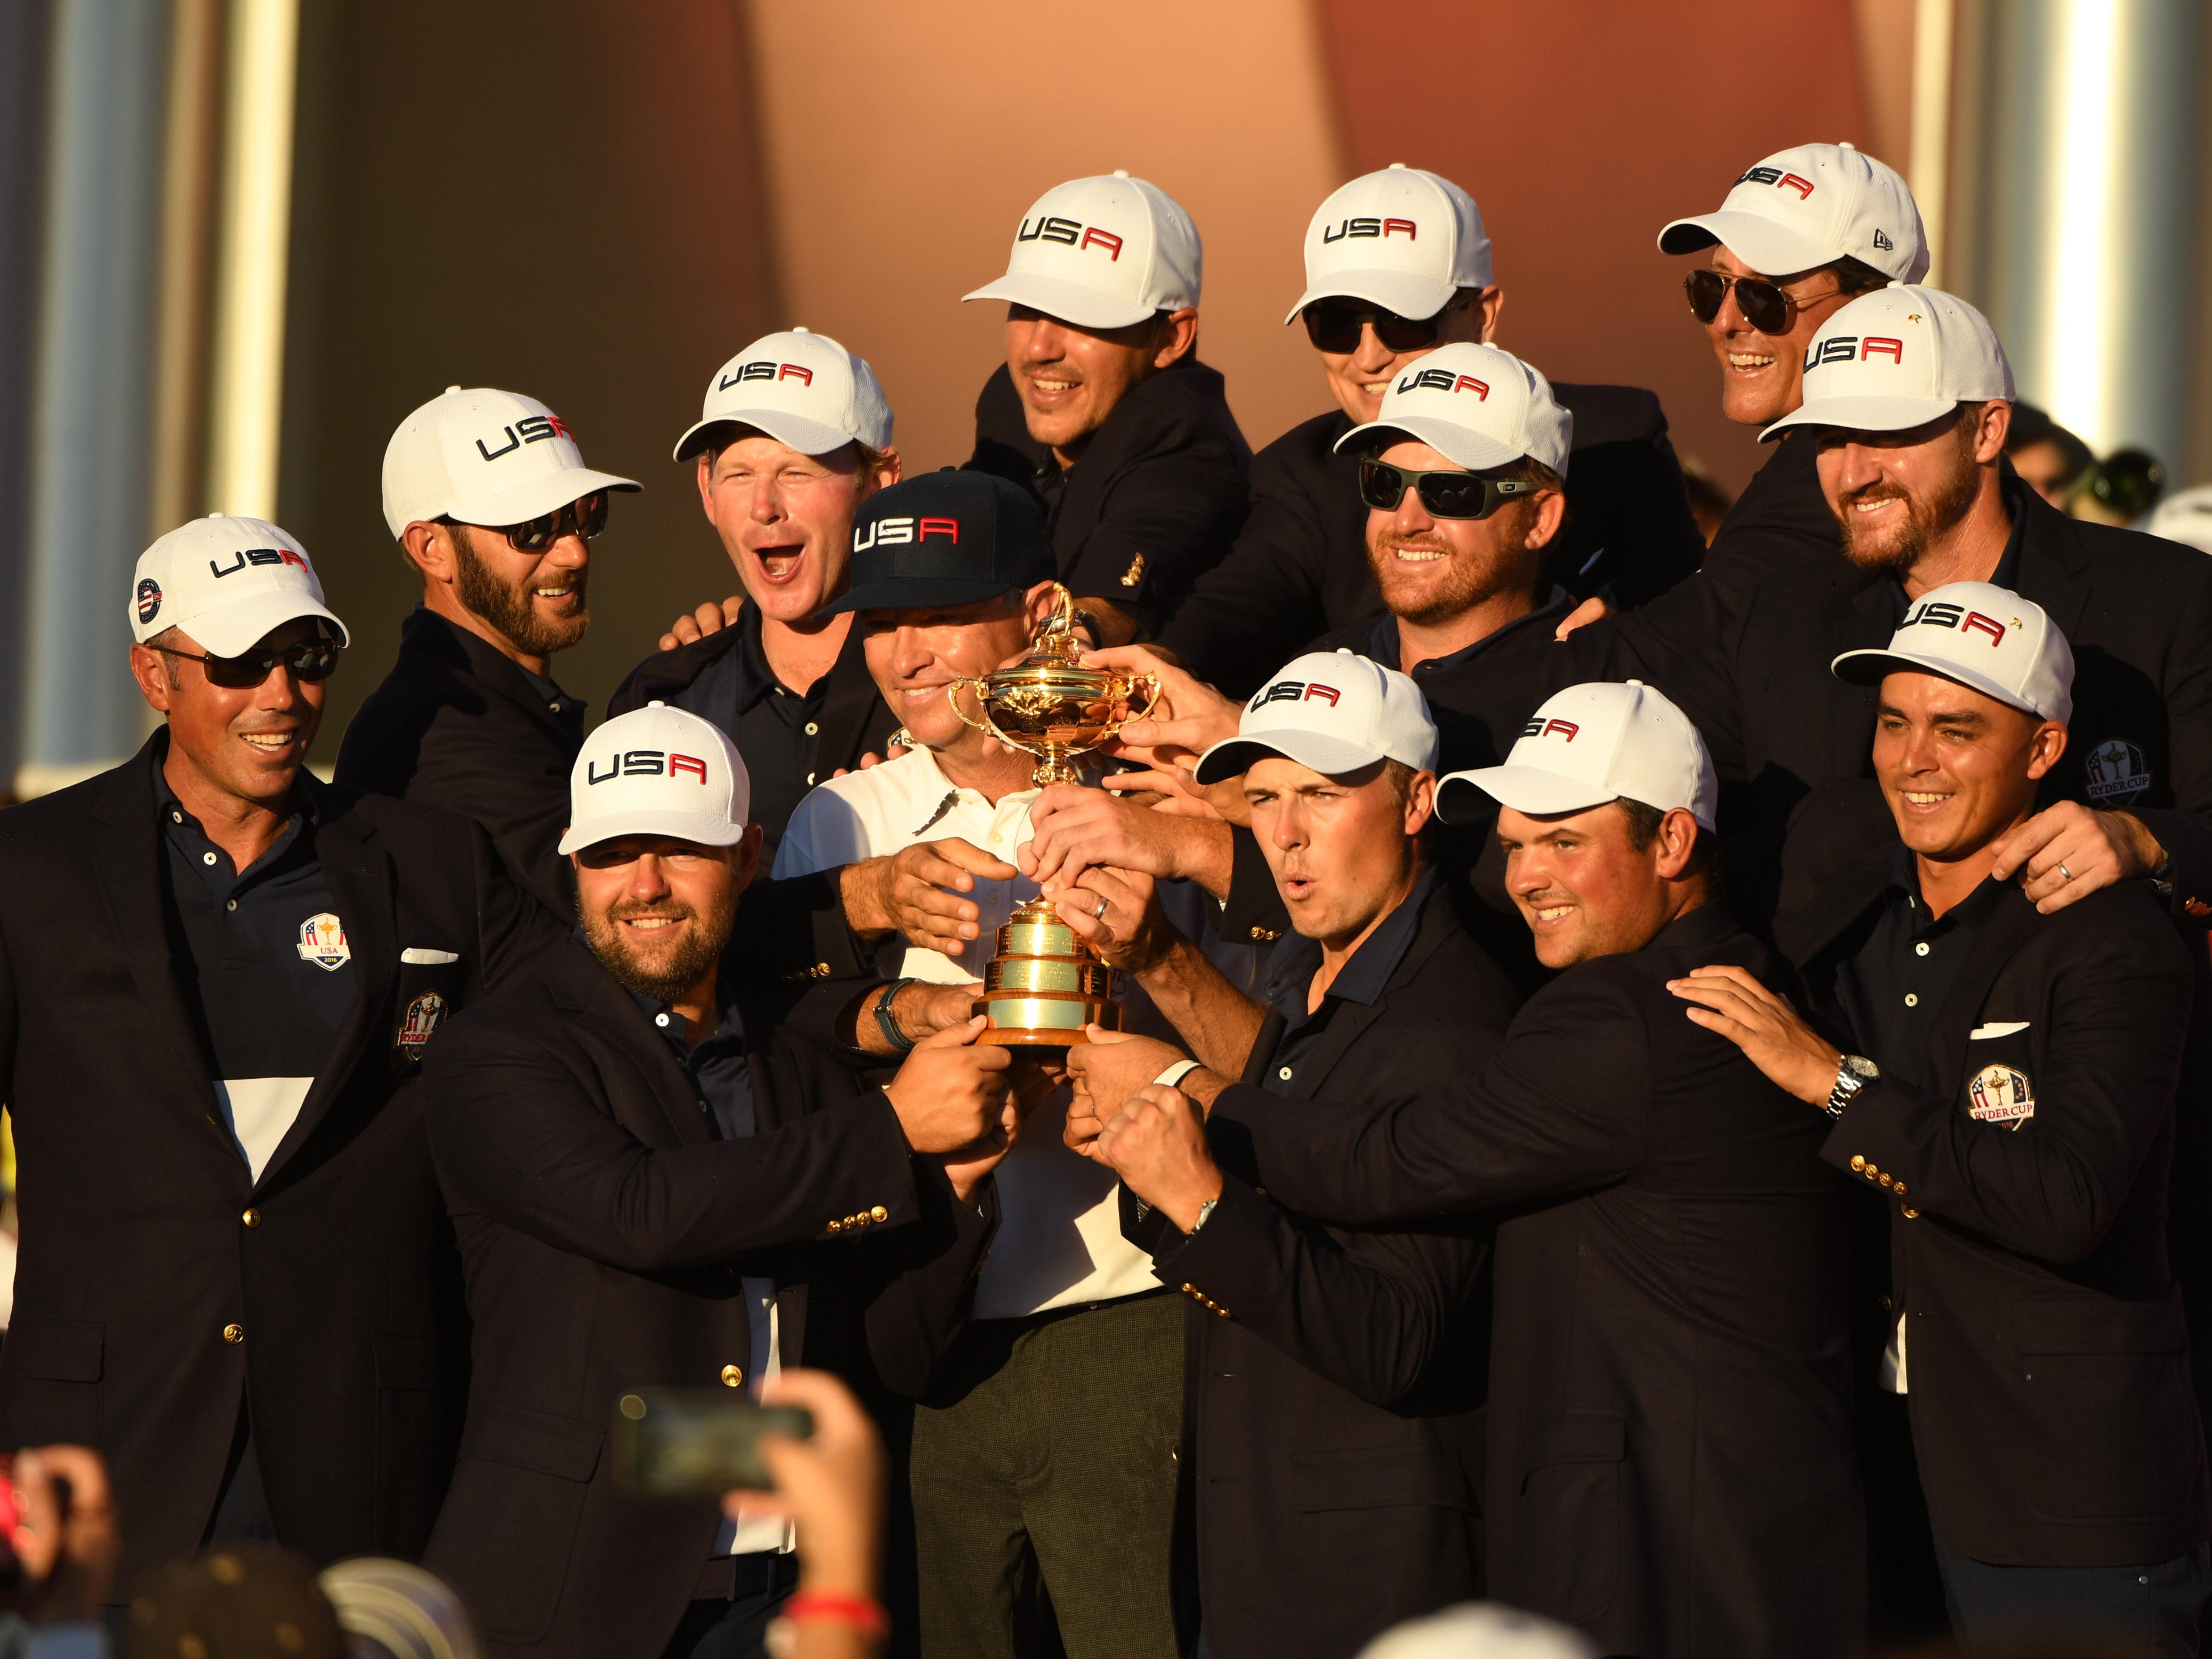 Team USA, 2016; The USA Ryder Cup team poses for a picture during the closing ceremonies after defeating Europe 17-11.